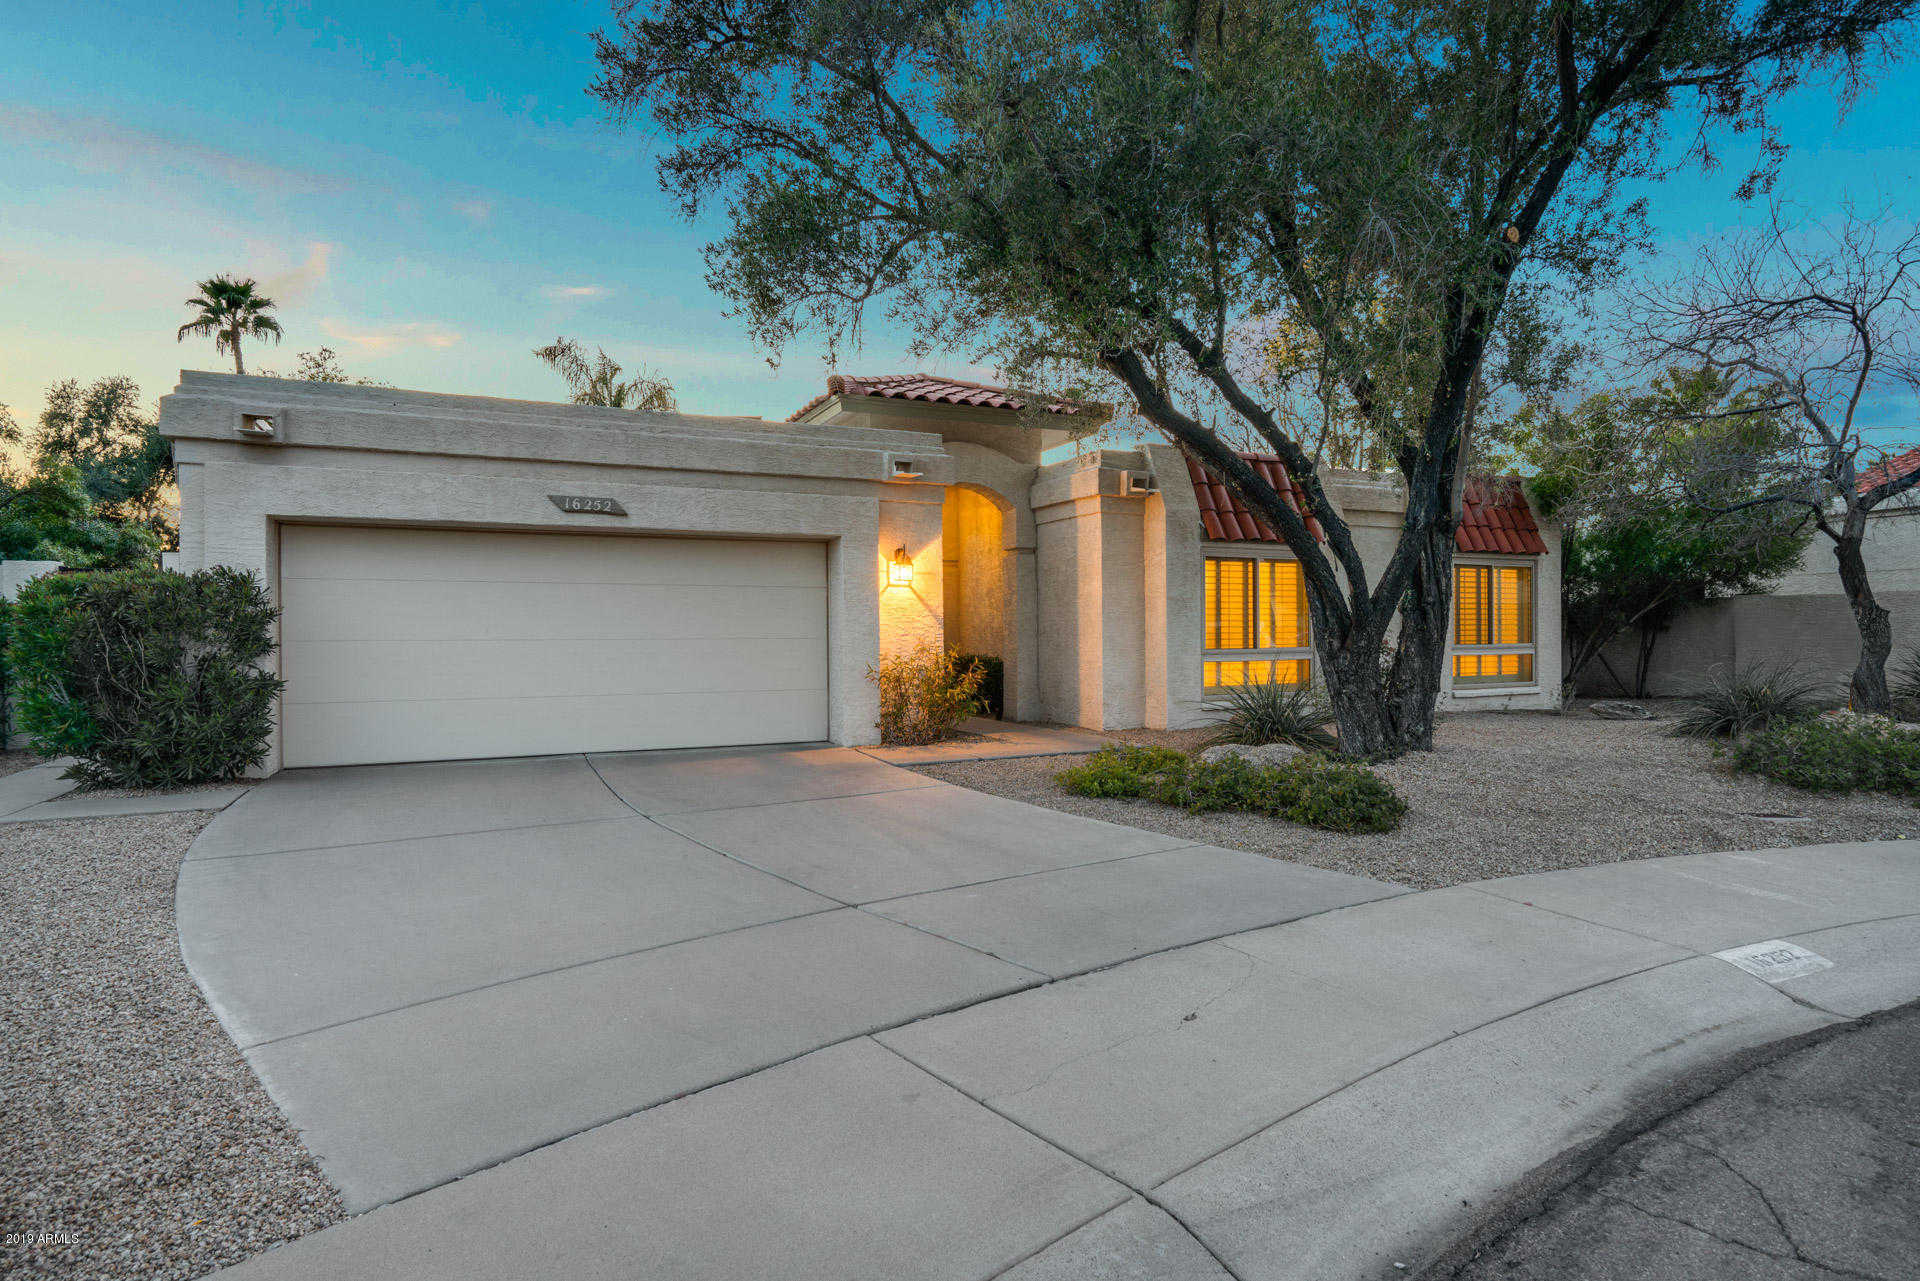 $589,000 - 4Br/3Ba - Home for Sale in North Ranch Unit 4 Lt 288-339 341-344 364-366, Scottsdale